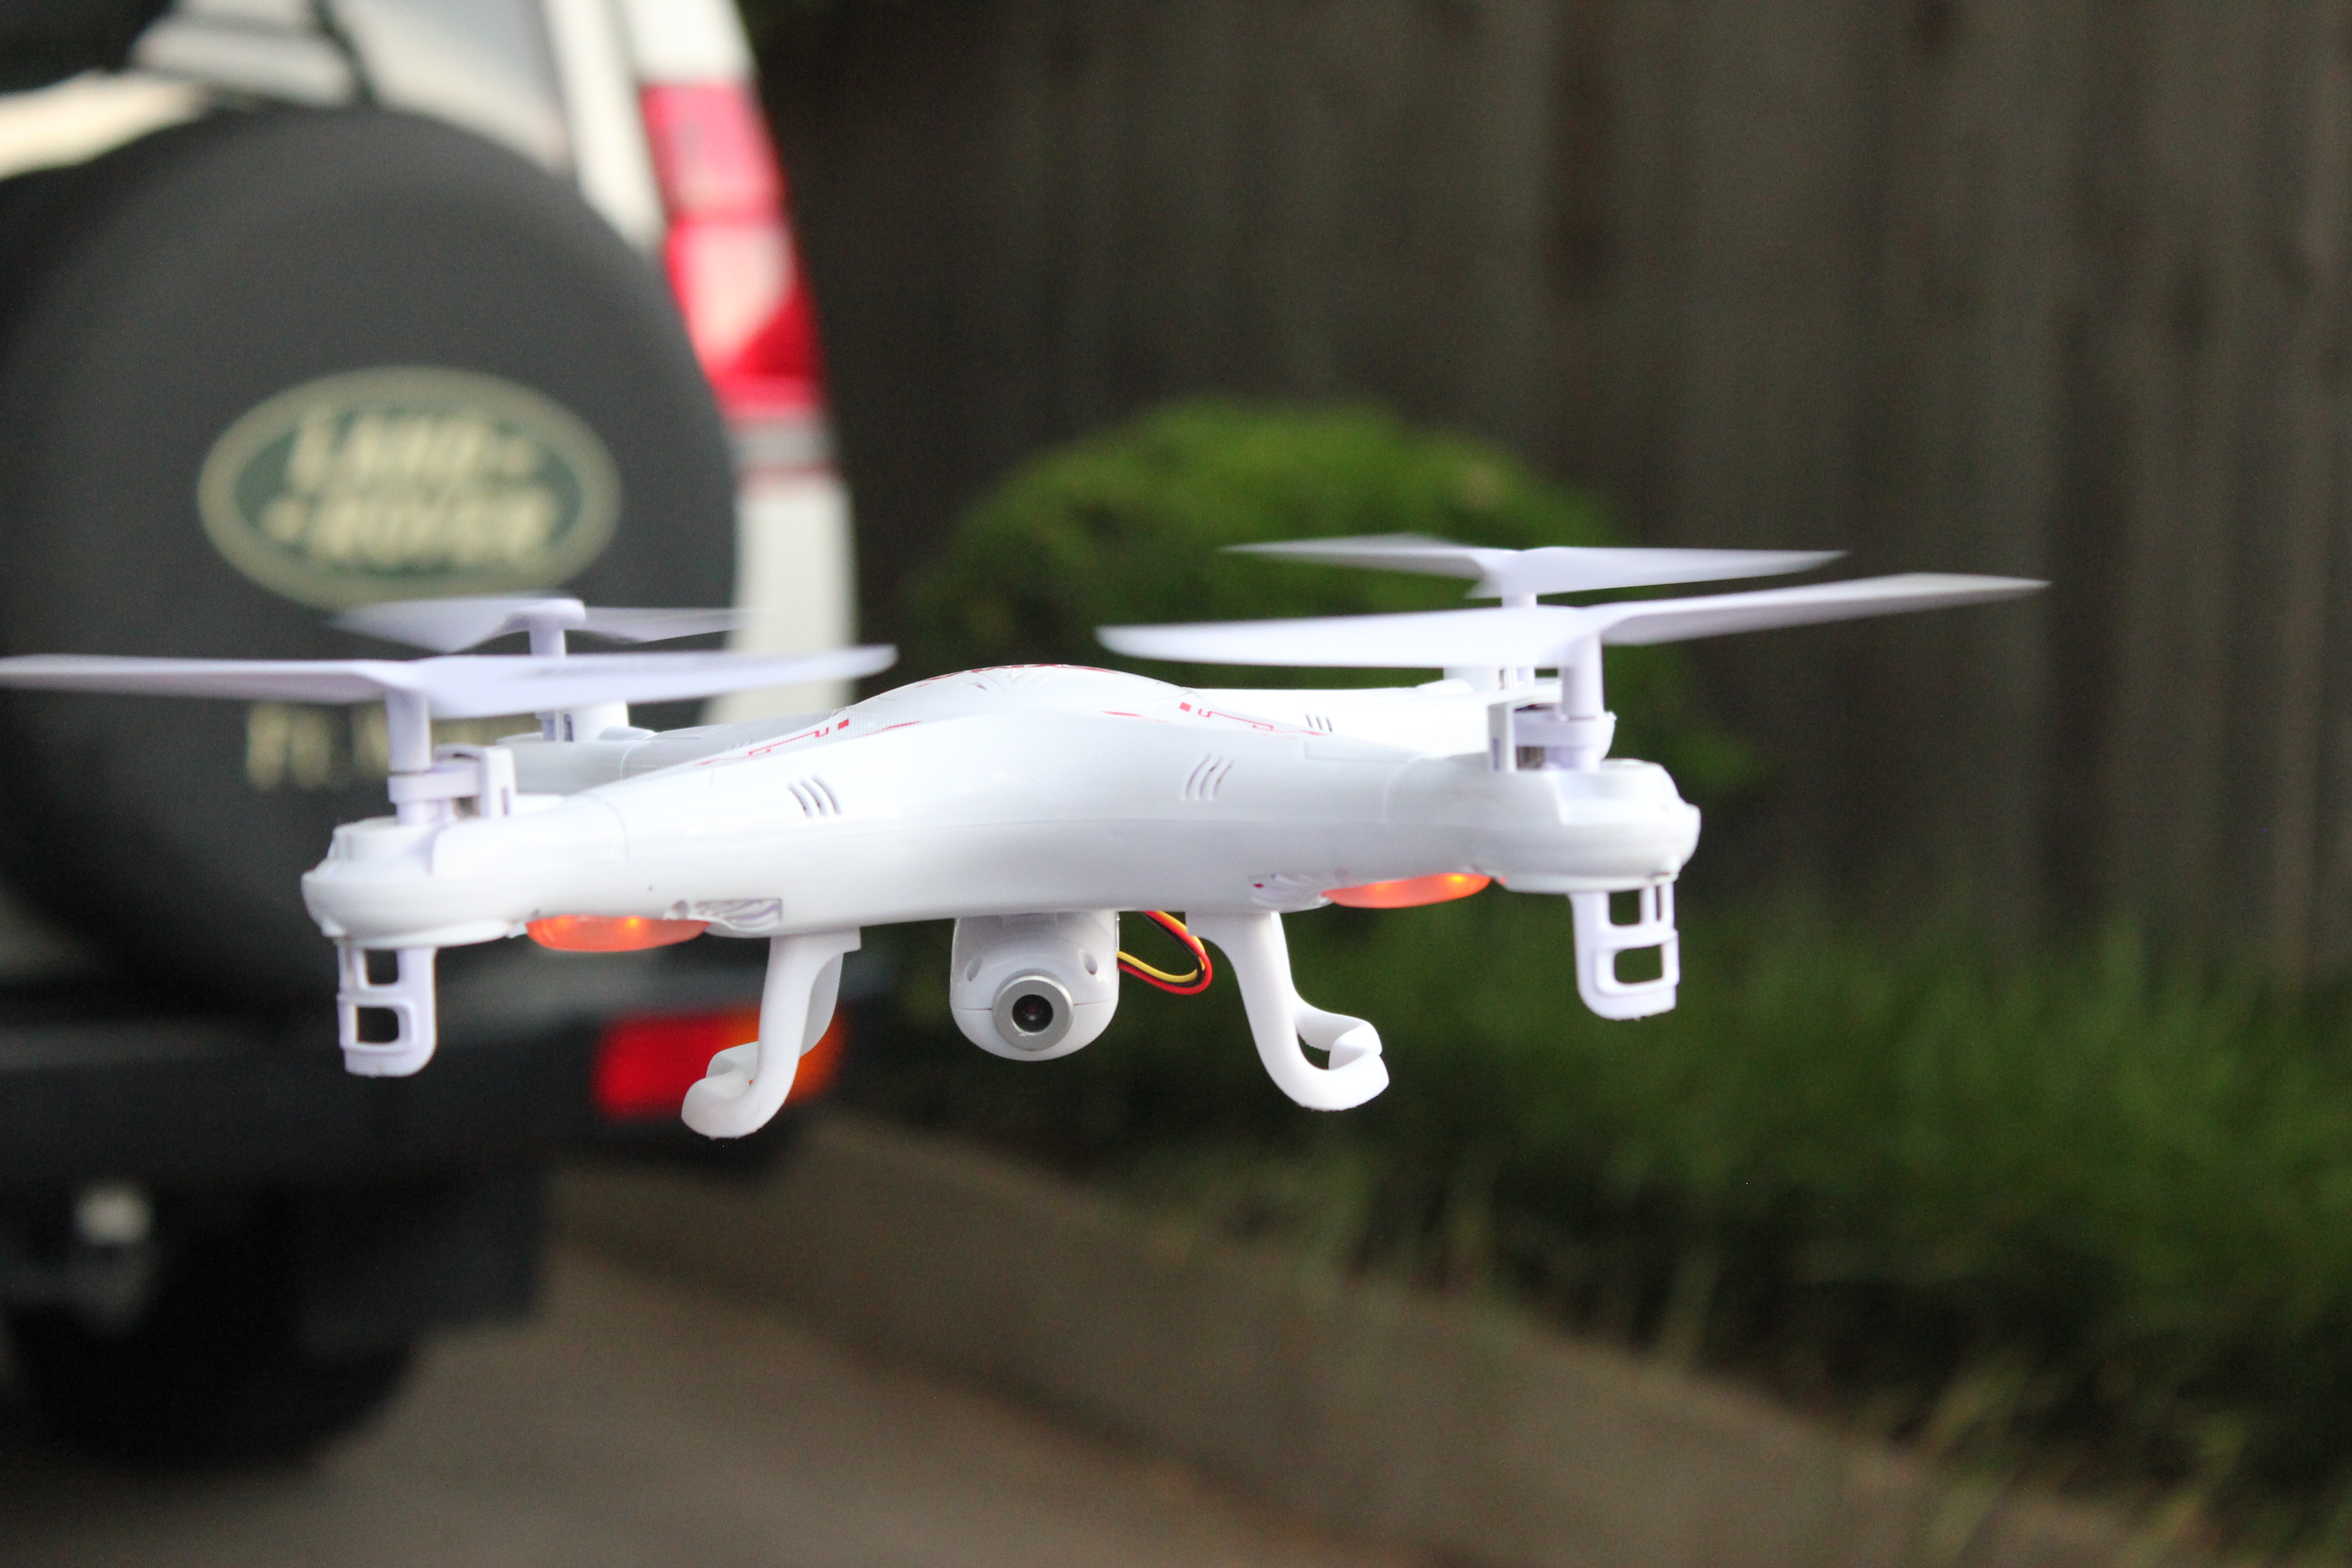 Syma quadcopter head on